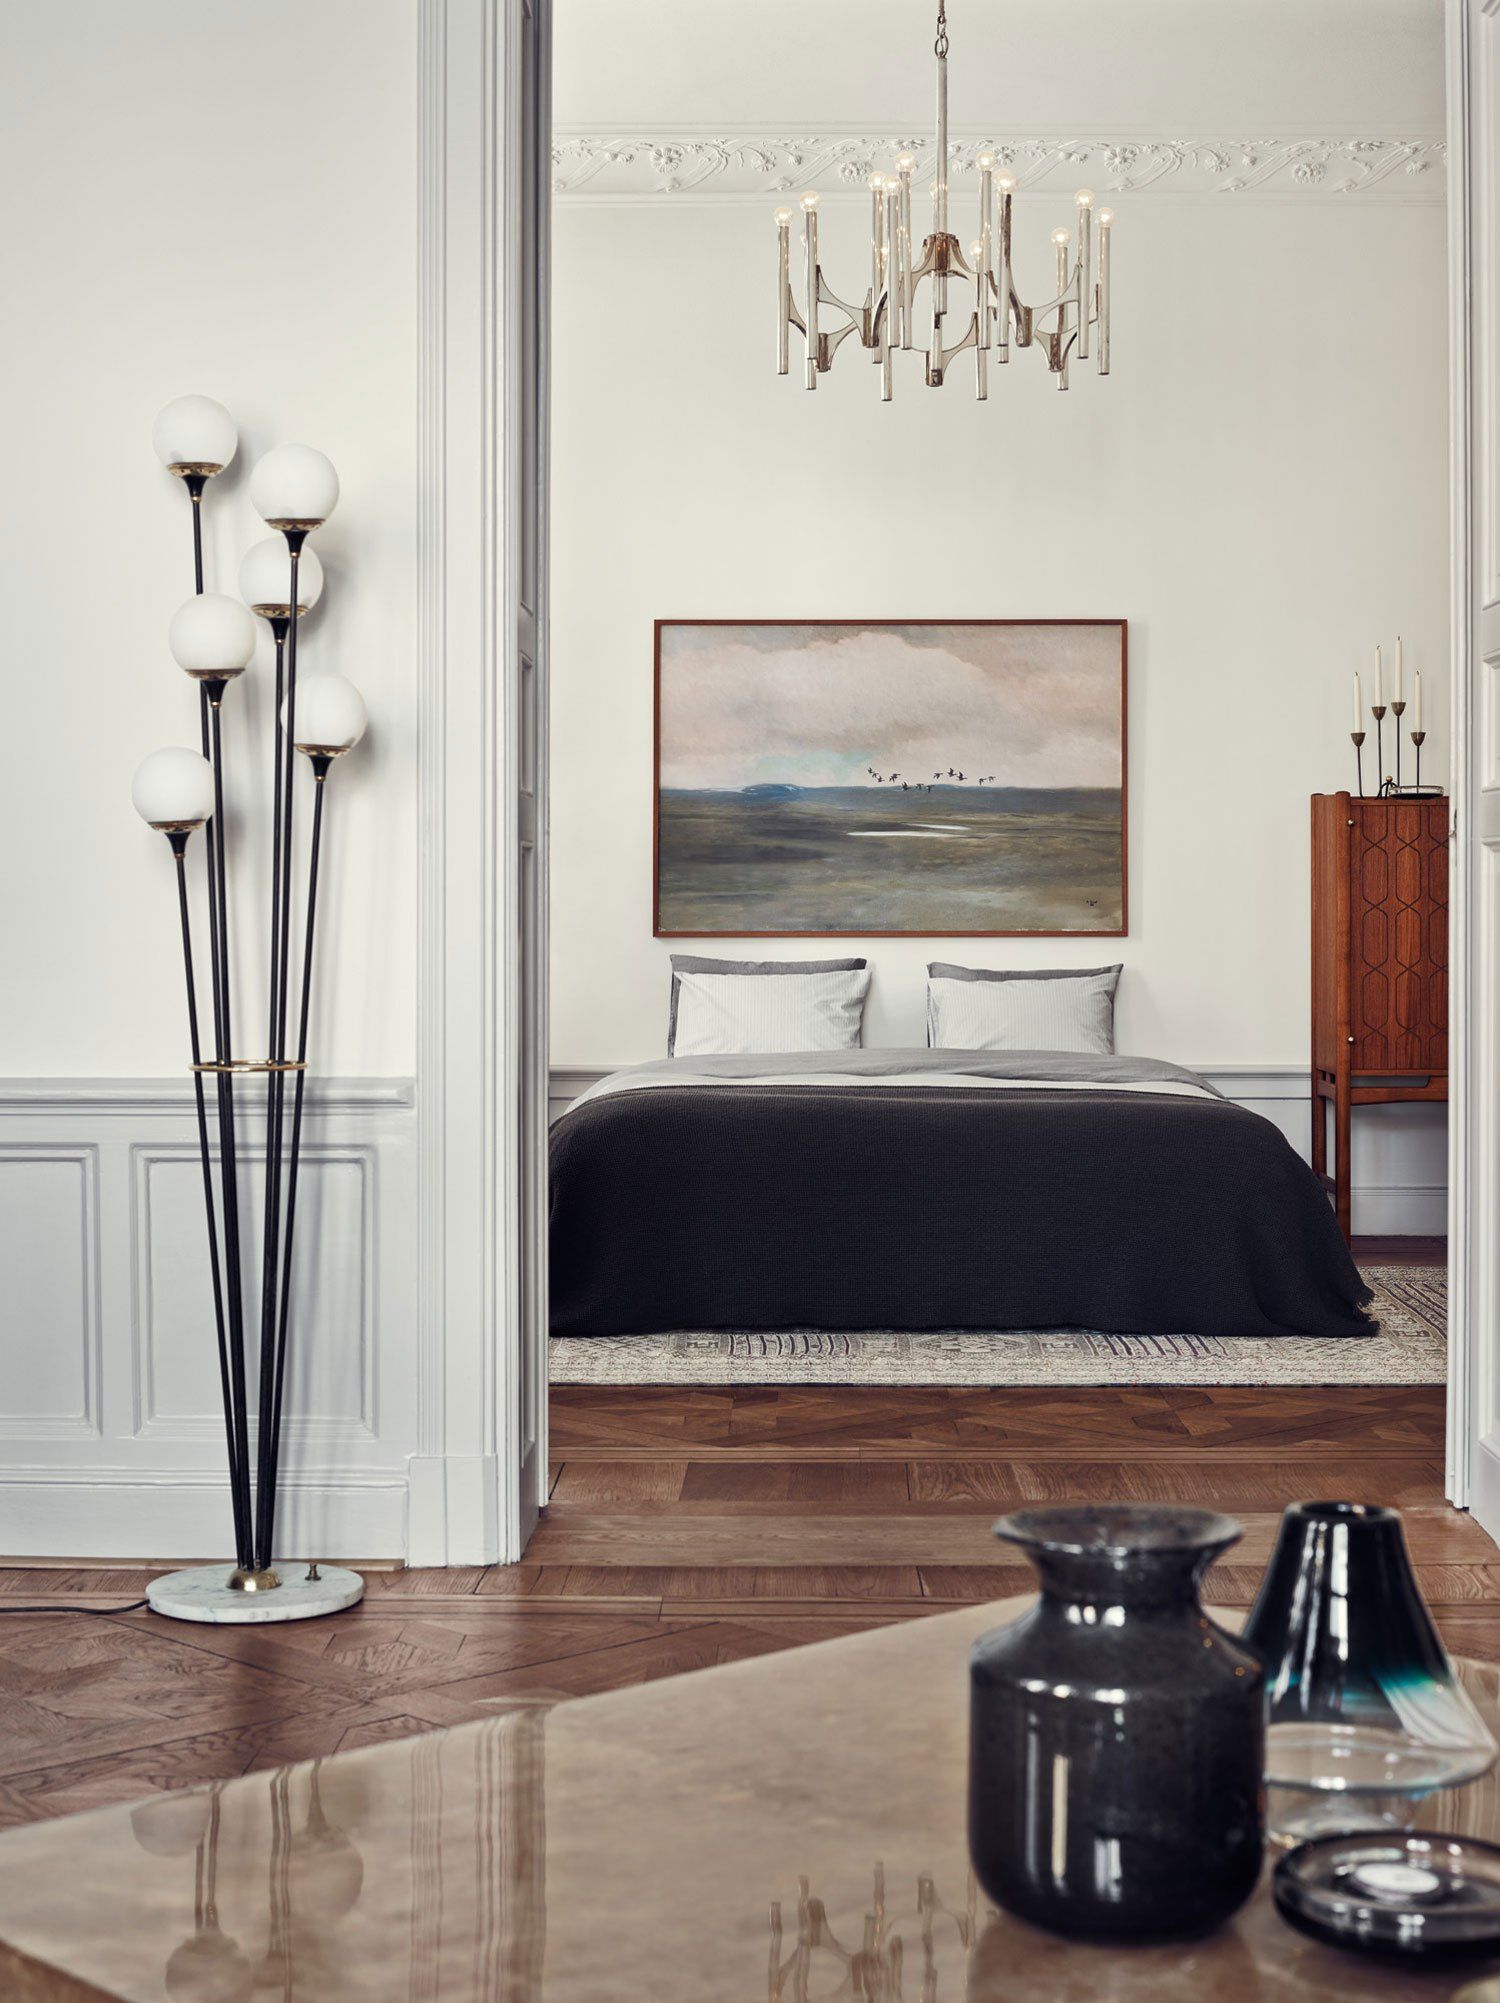 Scandinaviancollectorshome of the interior designer malin jensen stockholm stilnovo floor lamp malin jensen